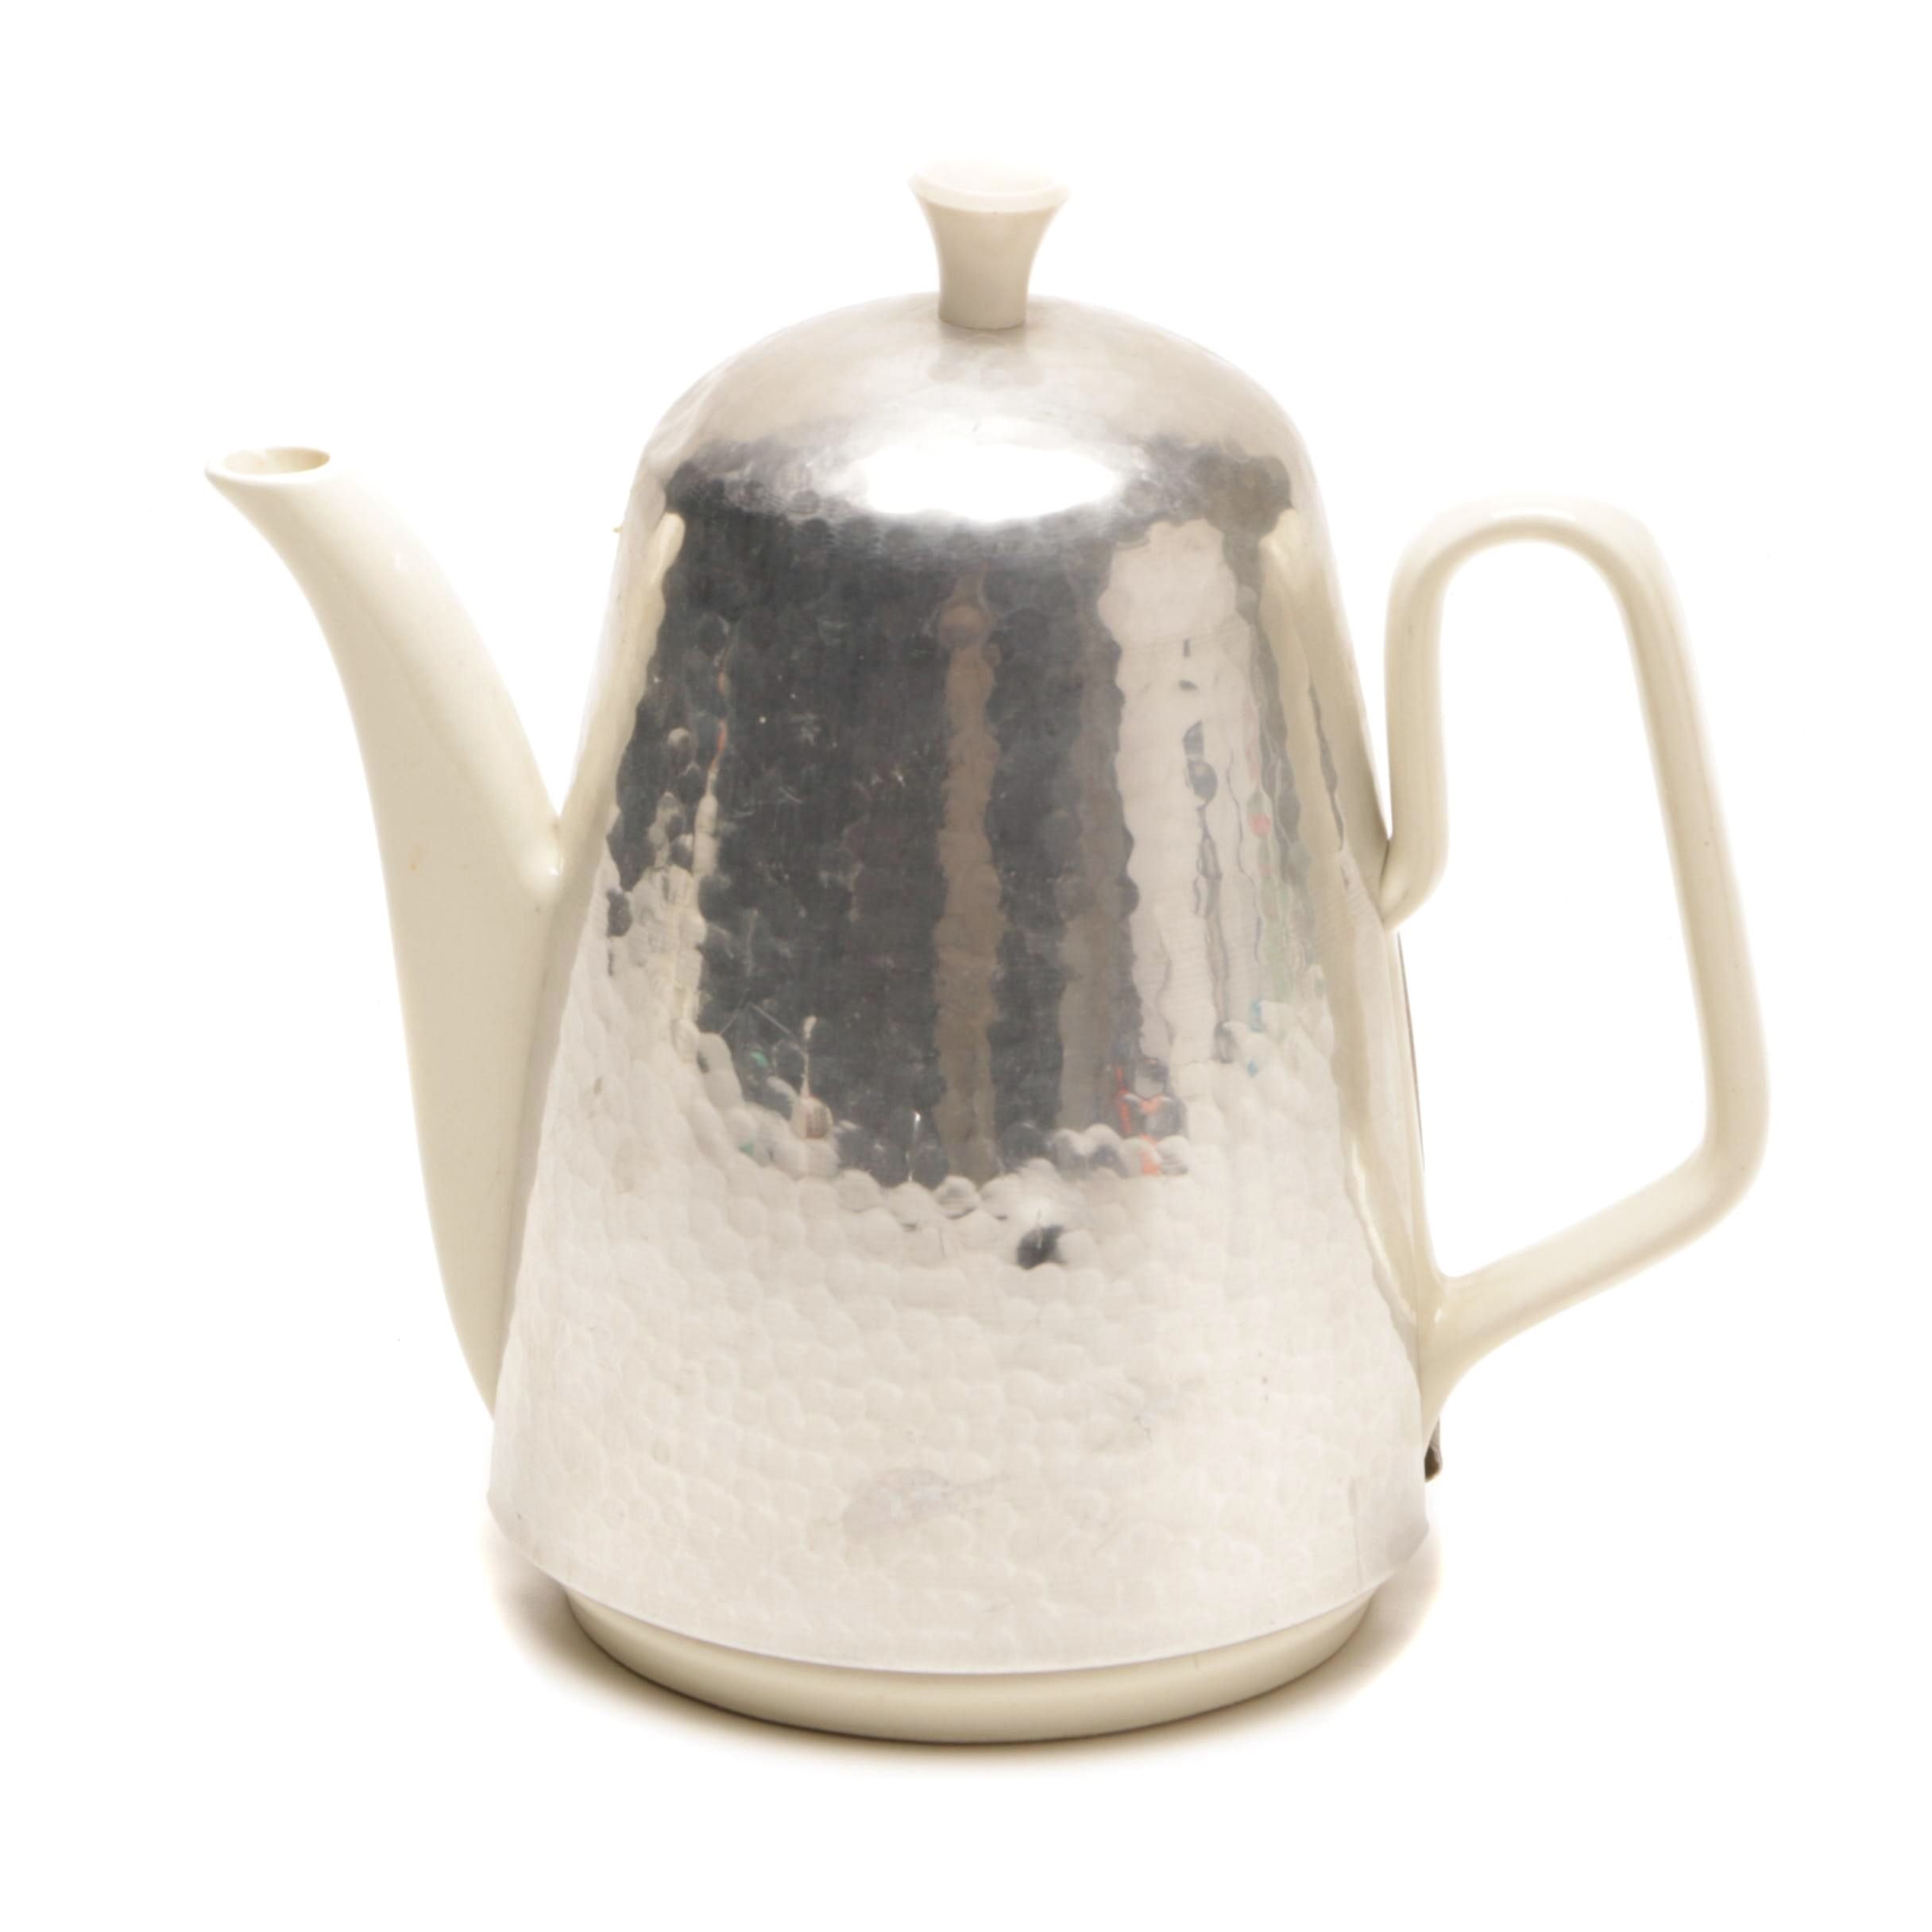 Waku Ceramic Coffee Pot with Hammered Aluminum Cozy